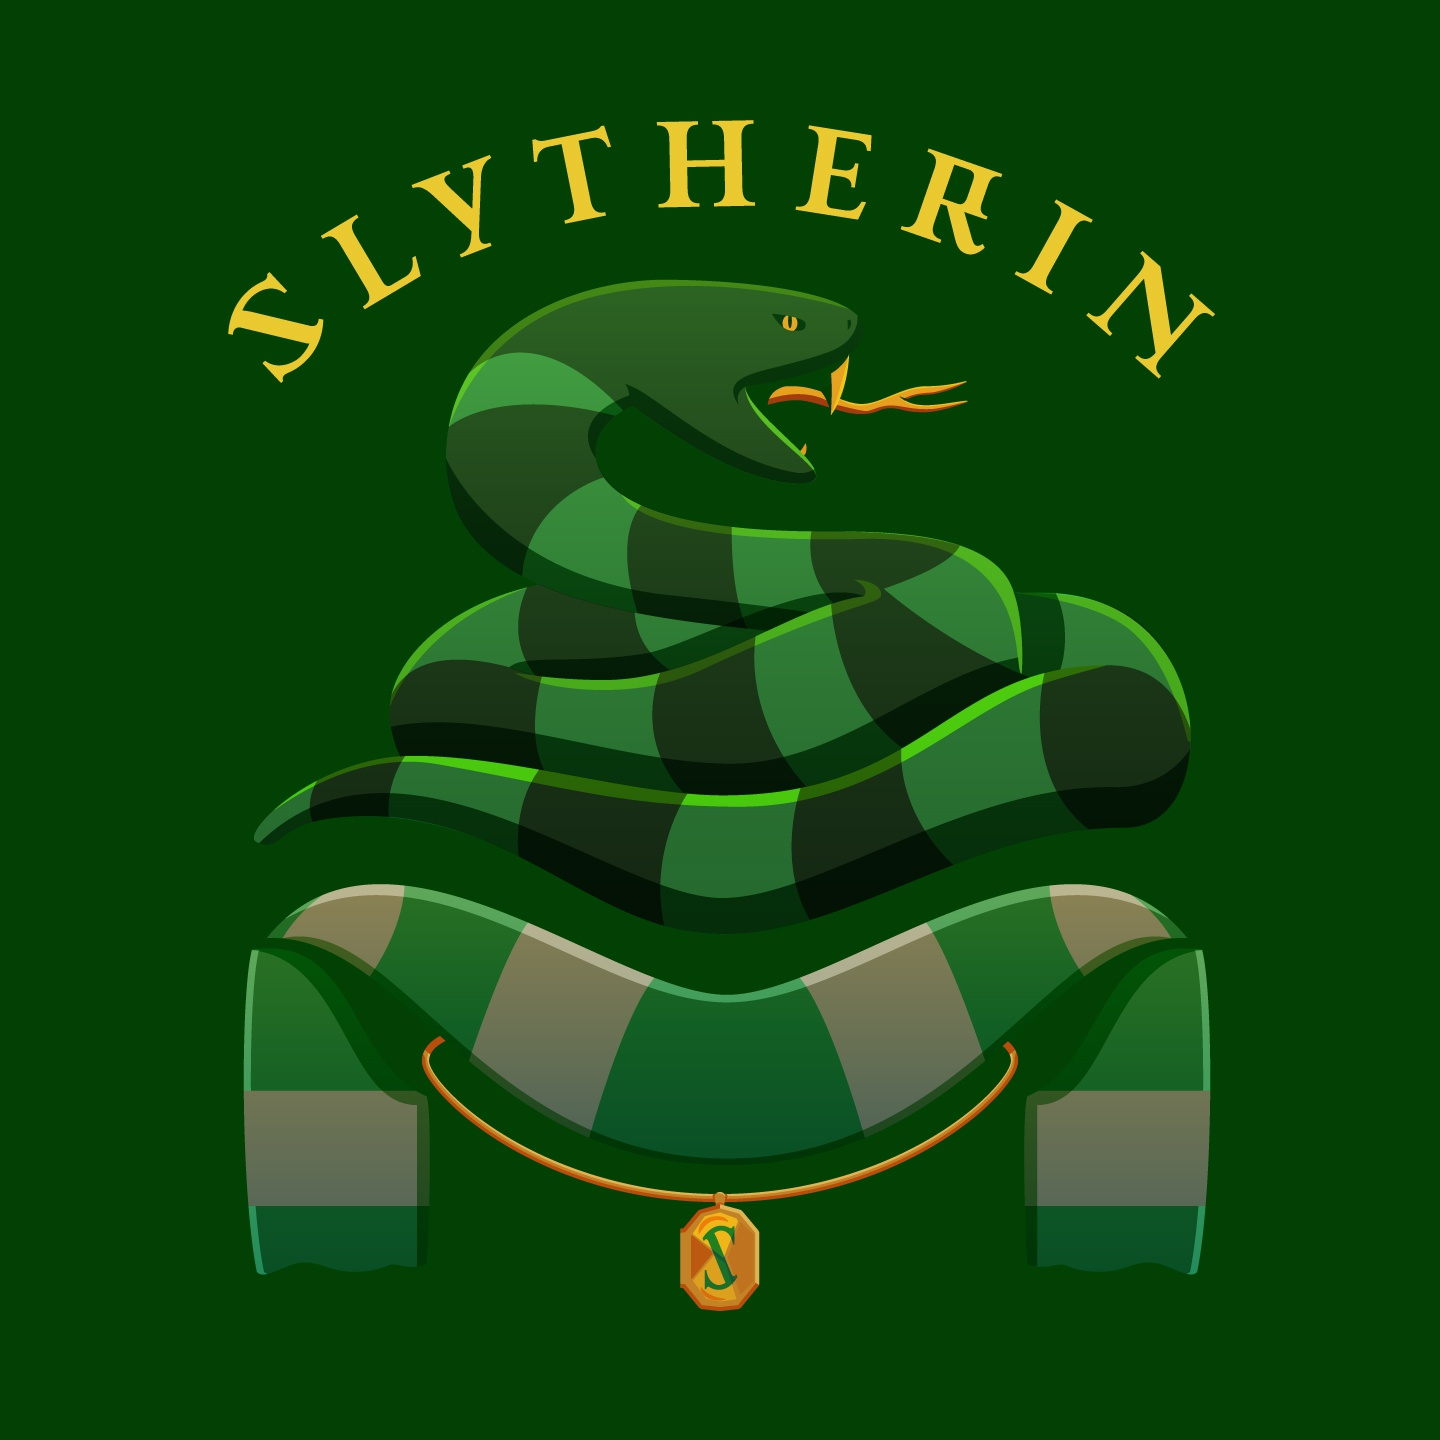 42 slytherin badge text